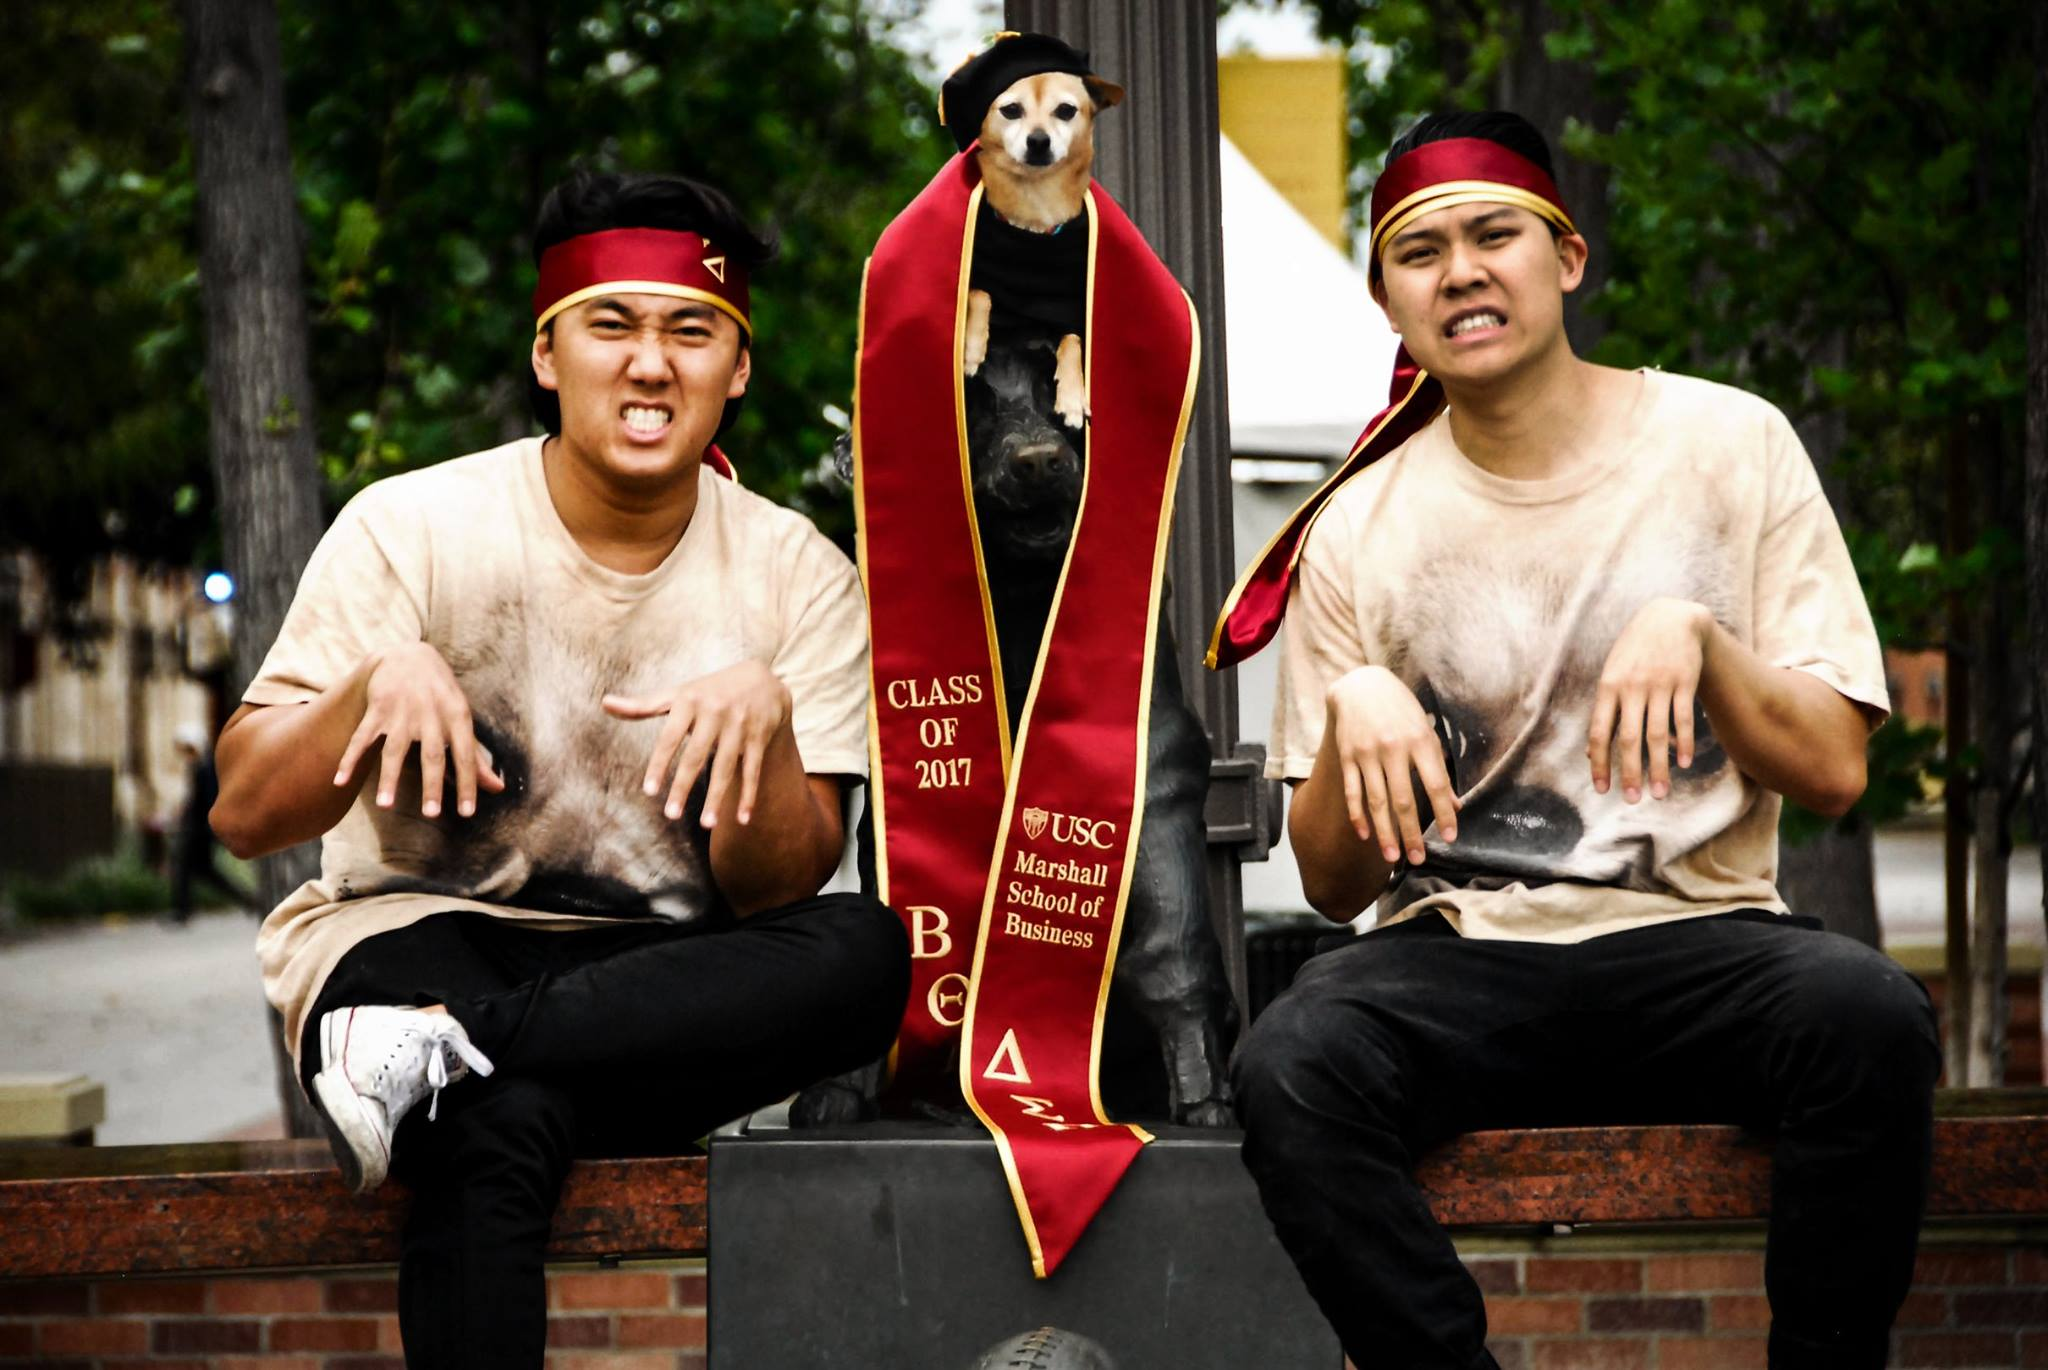 The Social Experiment Year 4: Two Bachelors and a Dogtorate